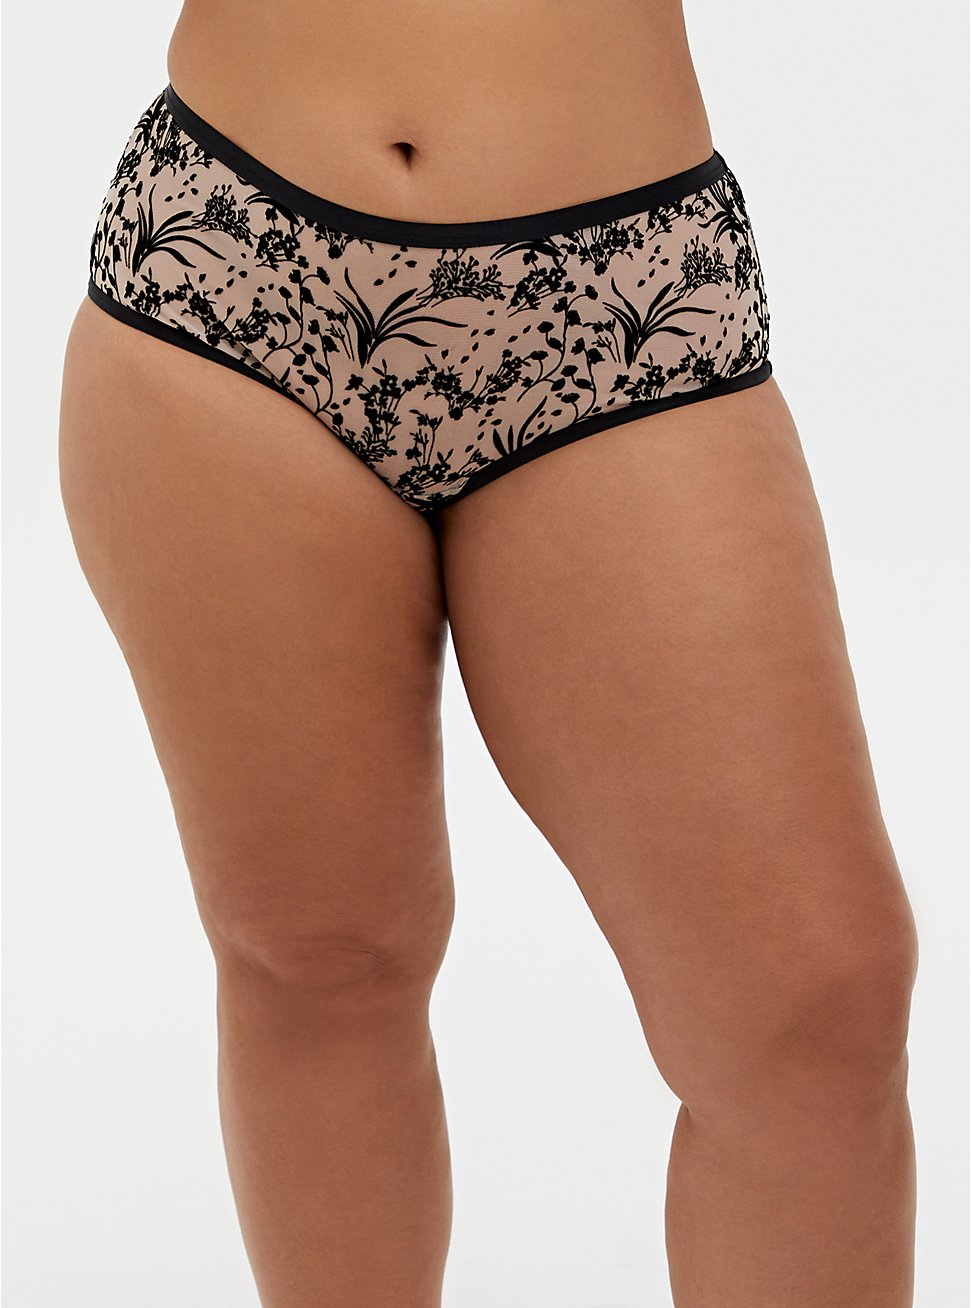 Pale Pink Mesh & Black Floral Open Back Cheeky Panty, REFLECTING POND, hi-res